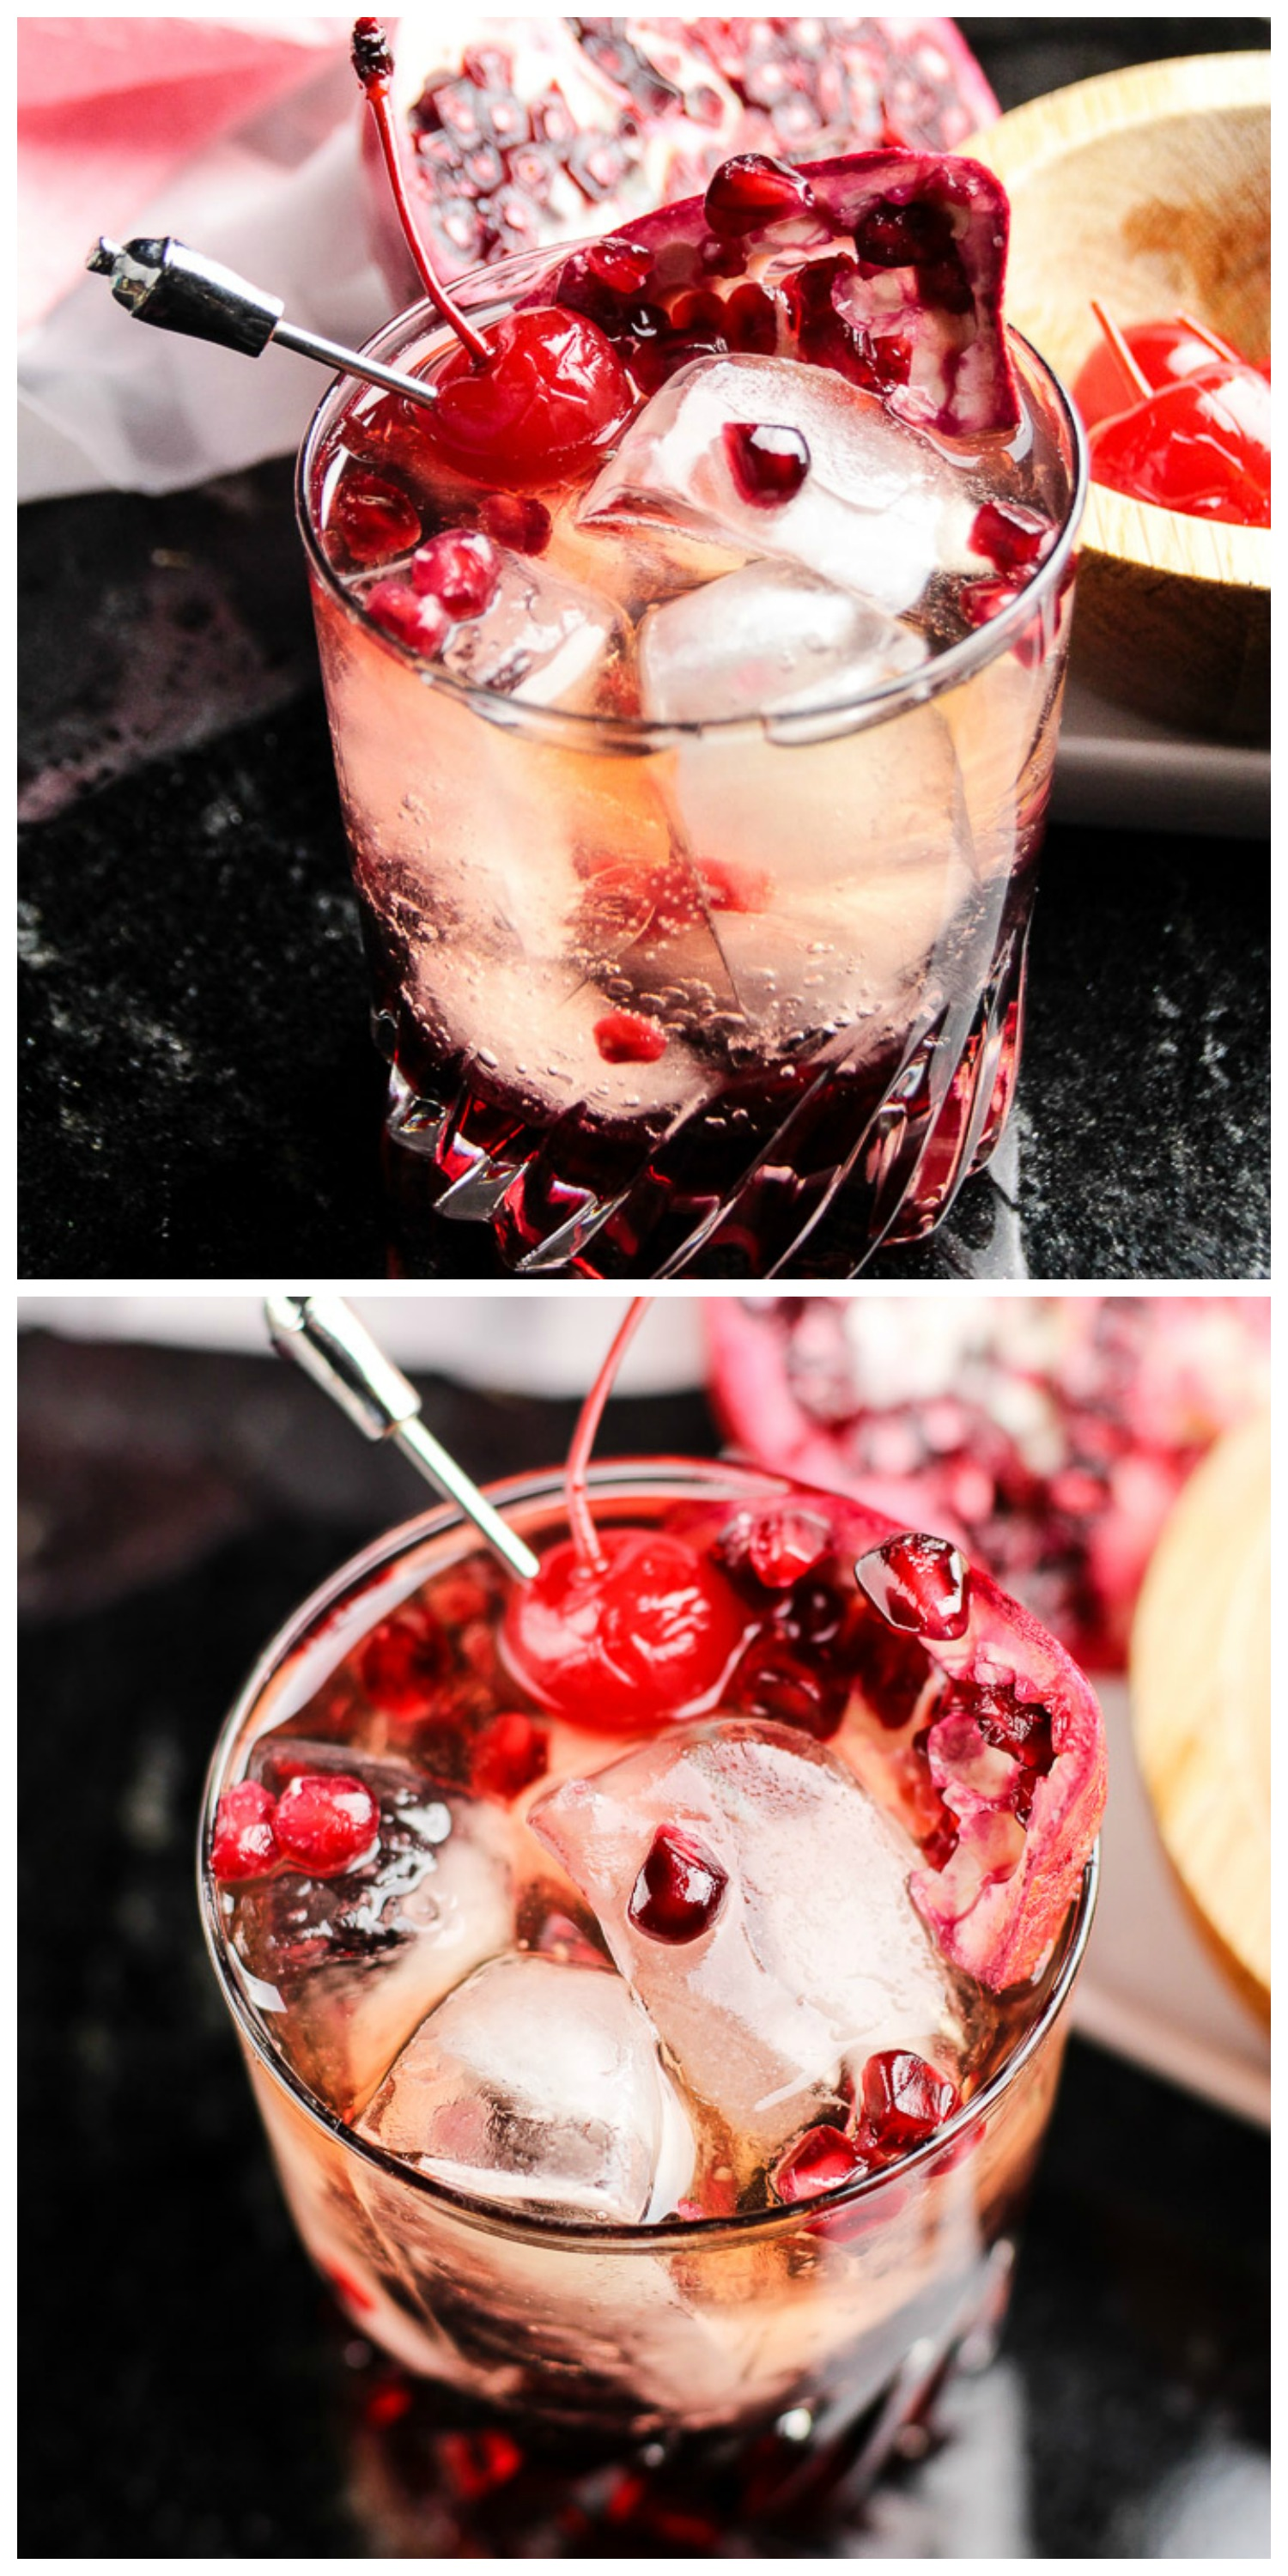 Our PomCherry Whiskey is mixed with Pomegranate, Cherry, and a little whiskey. This elegant drink is great for a nightcap, or an impressive way to wow your party guests. Either way, this refreshing whiskey drink is one to add to the cocktail menu.